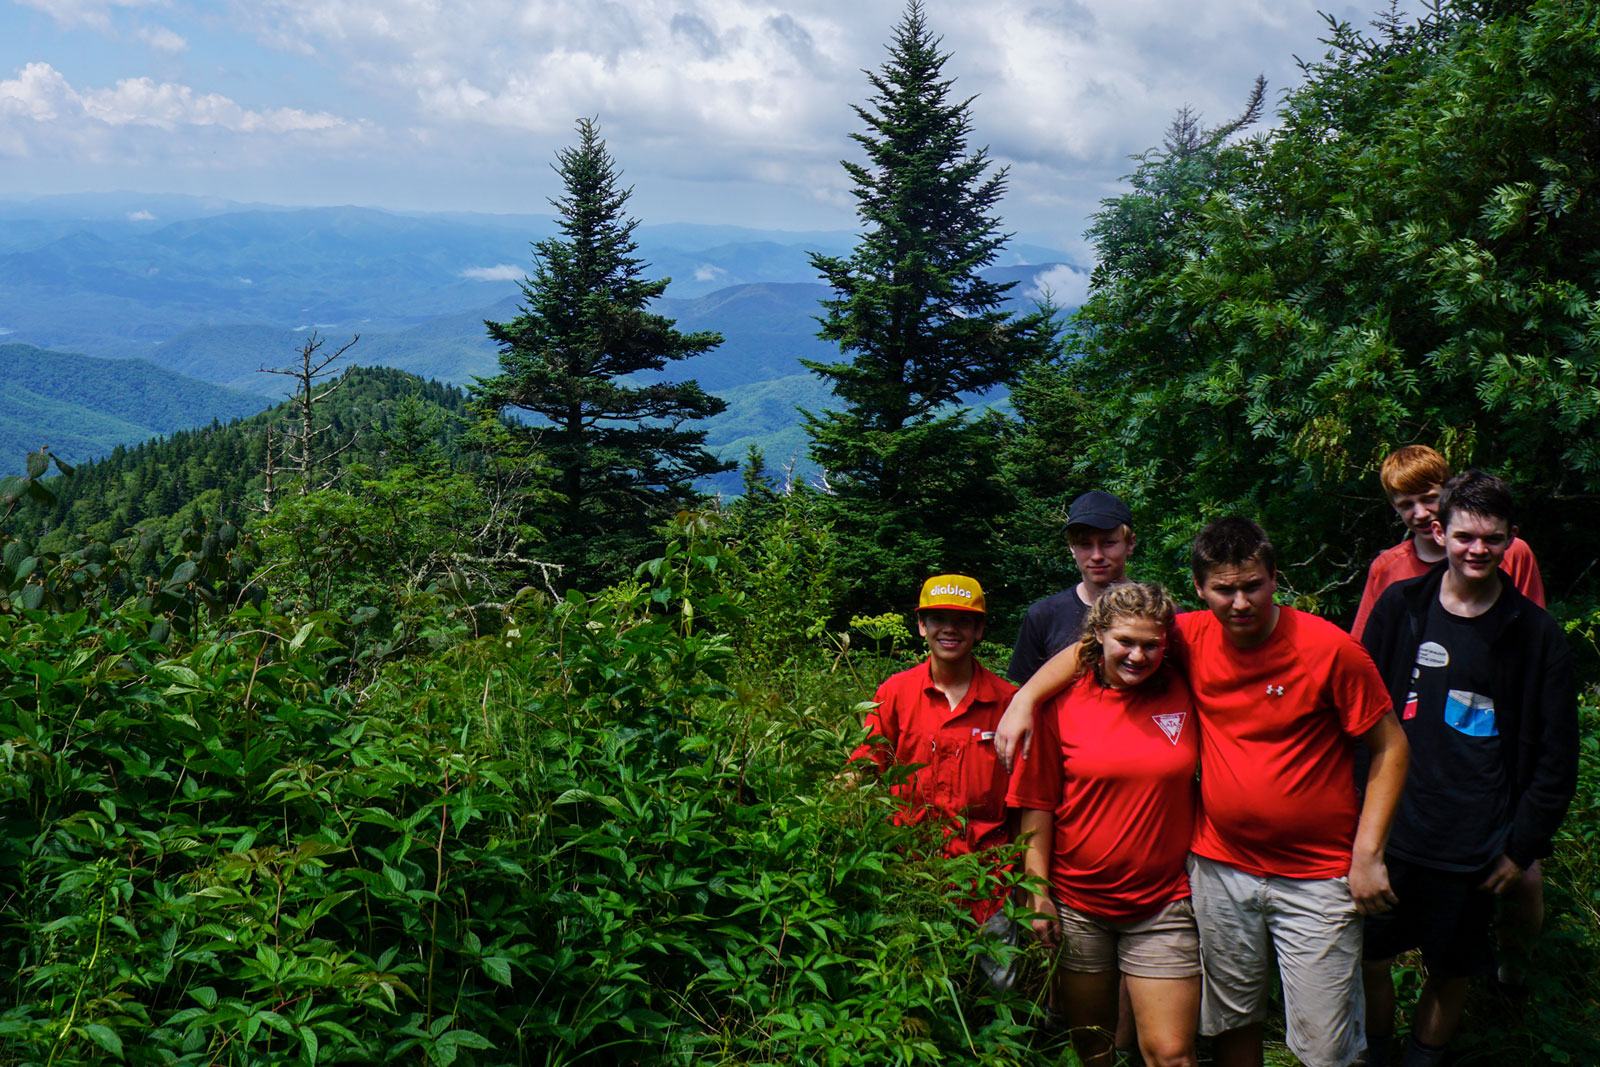 Campers of Teen High Adventure pose for a photo in the Smokies backcountry